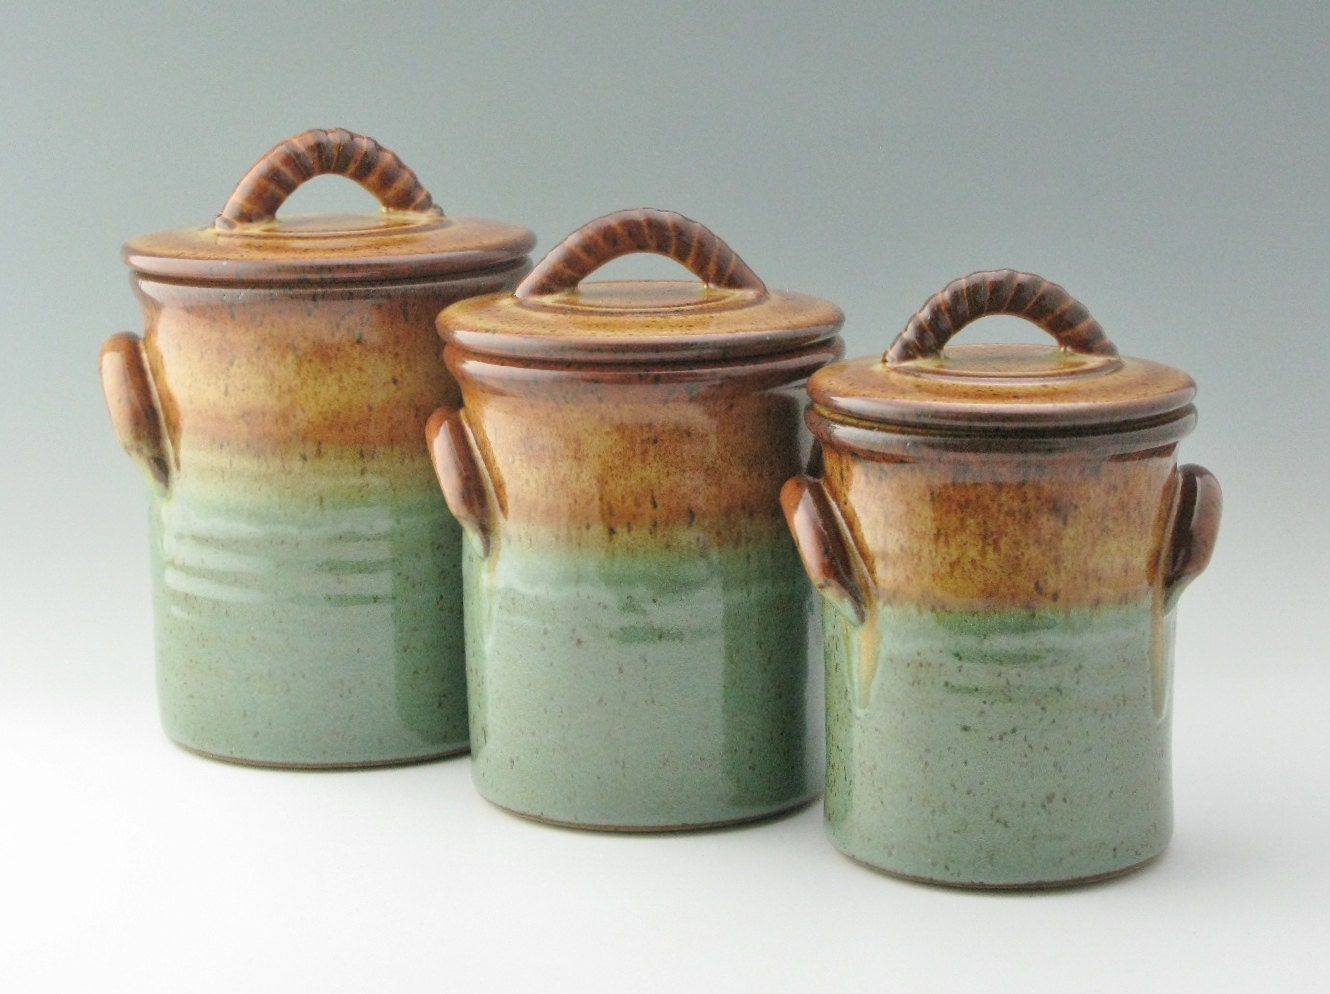 Pottery Canister Set with 3 Sizes with Lids in Honey Brown and